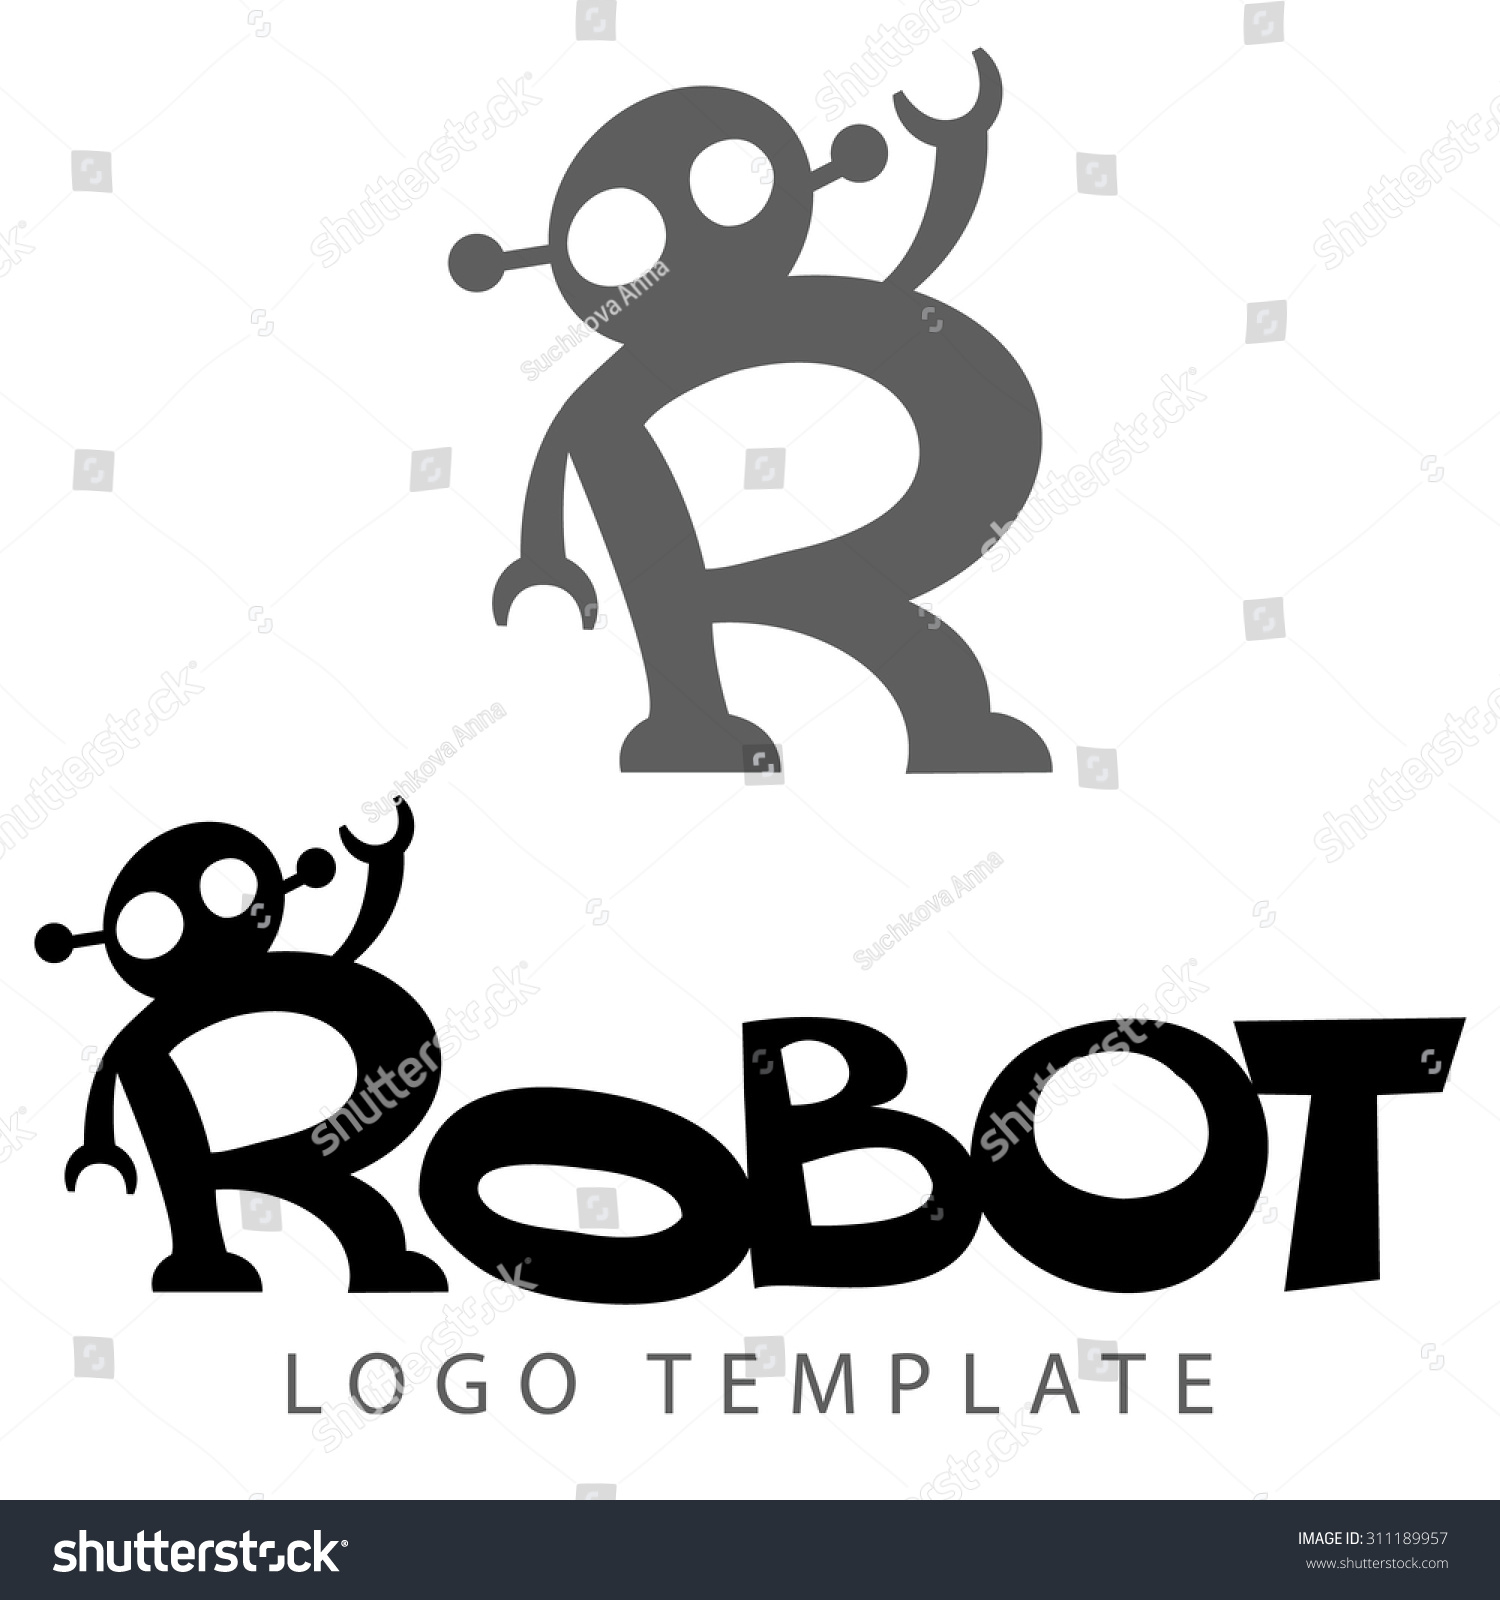 Stylized Lettering With Picture Of Robot Like Letter R